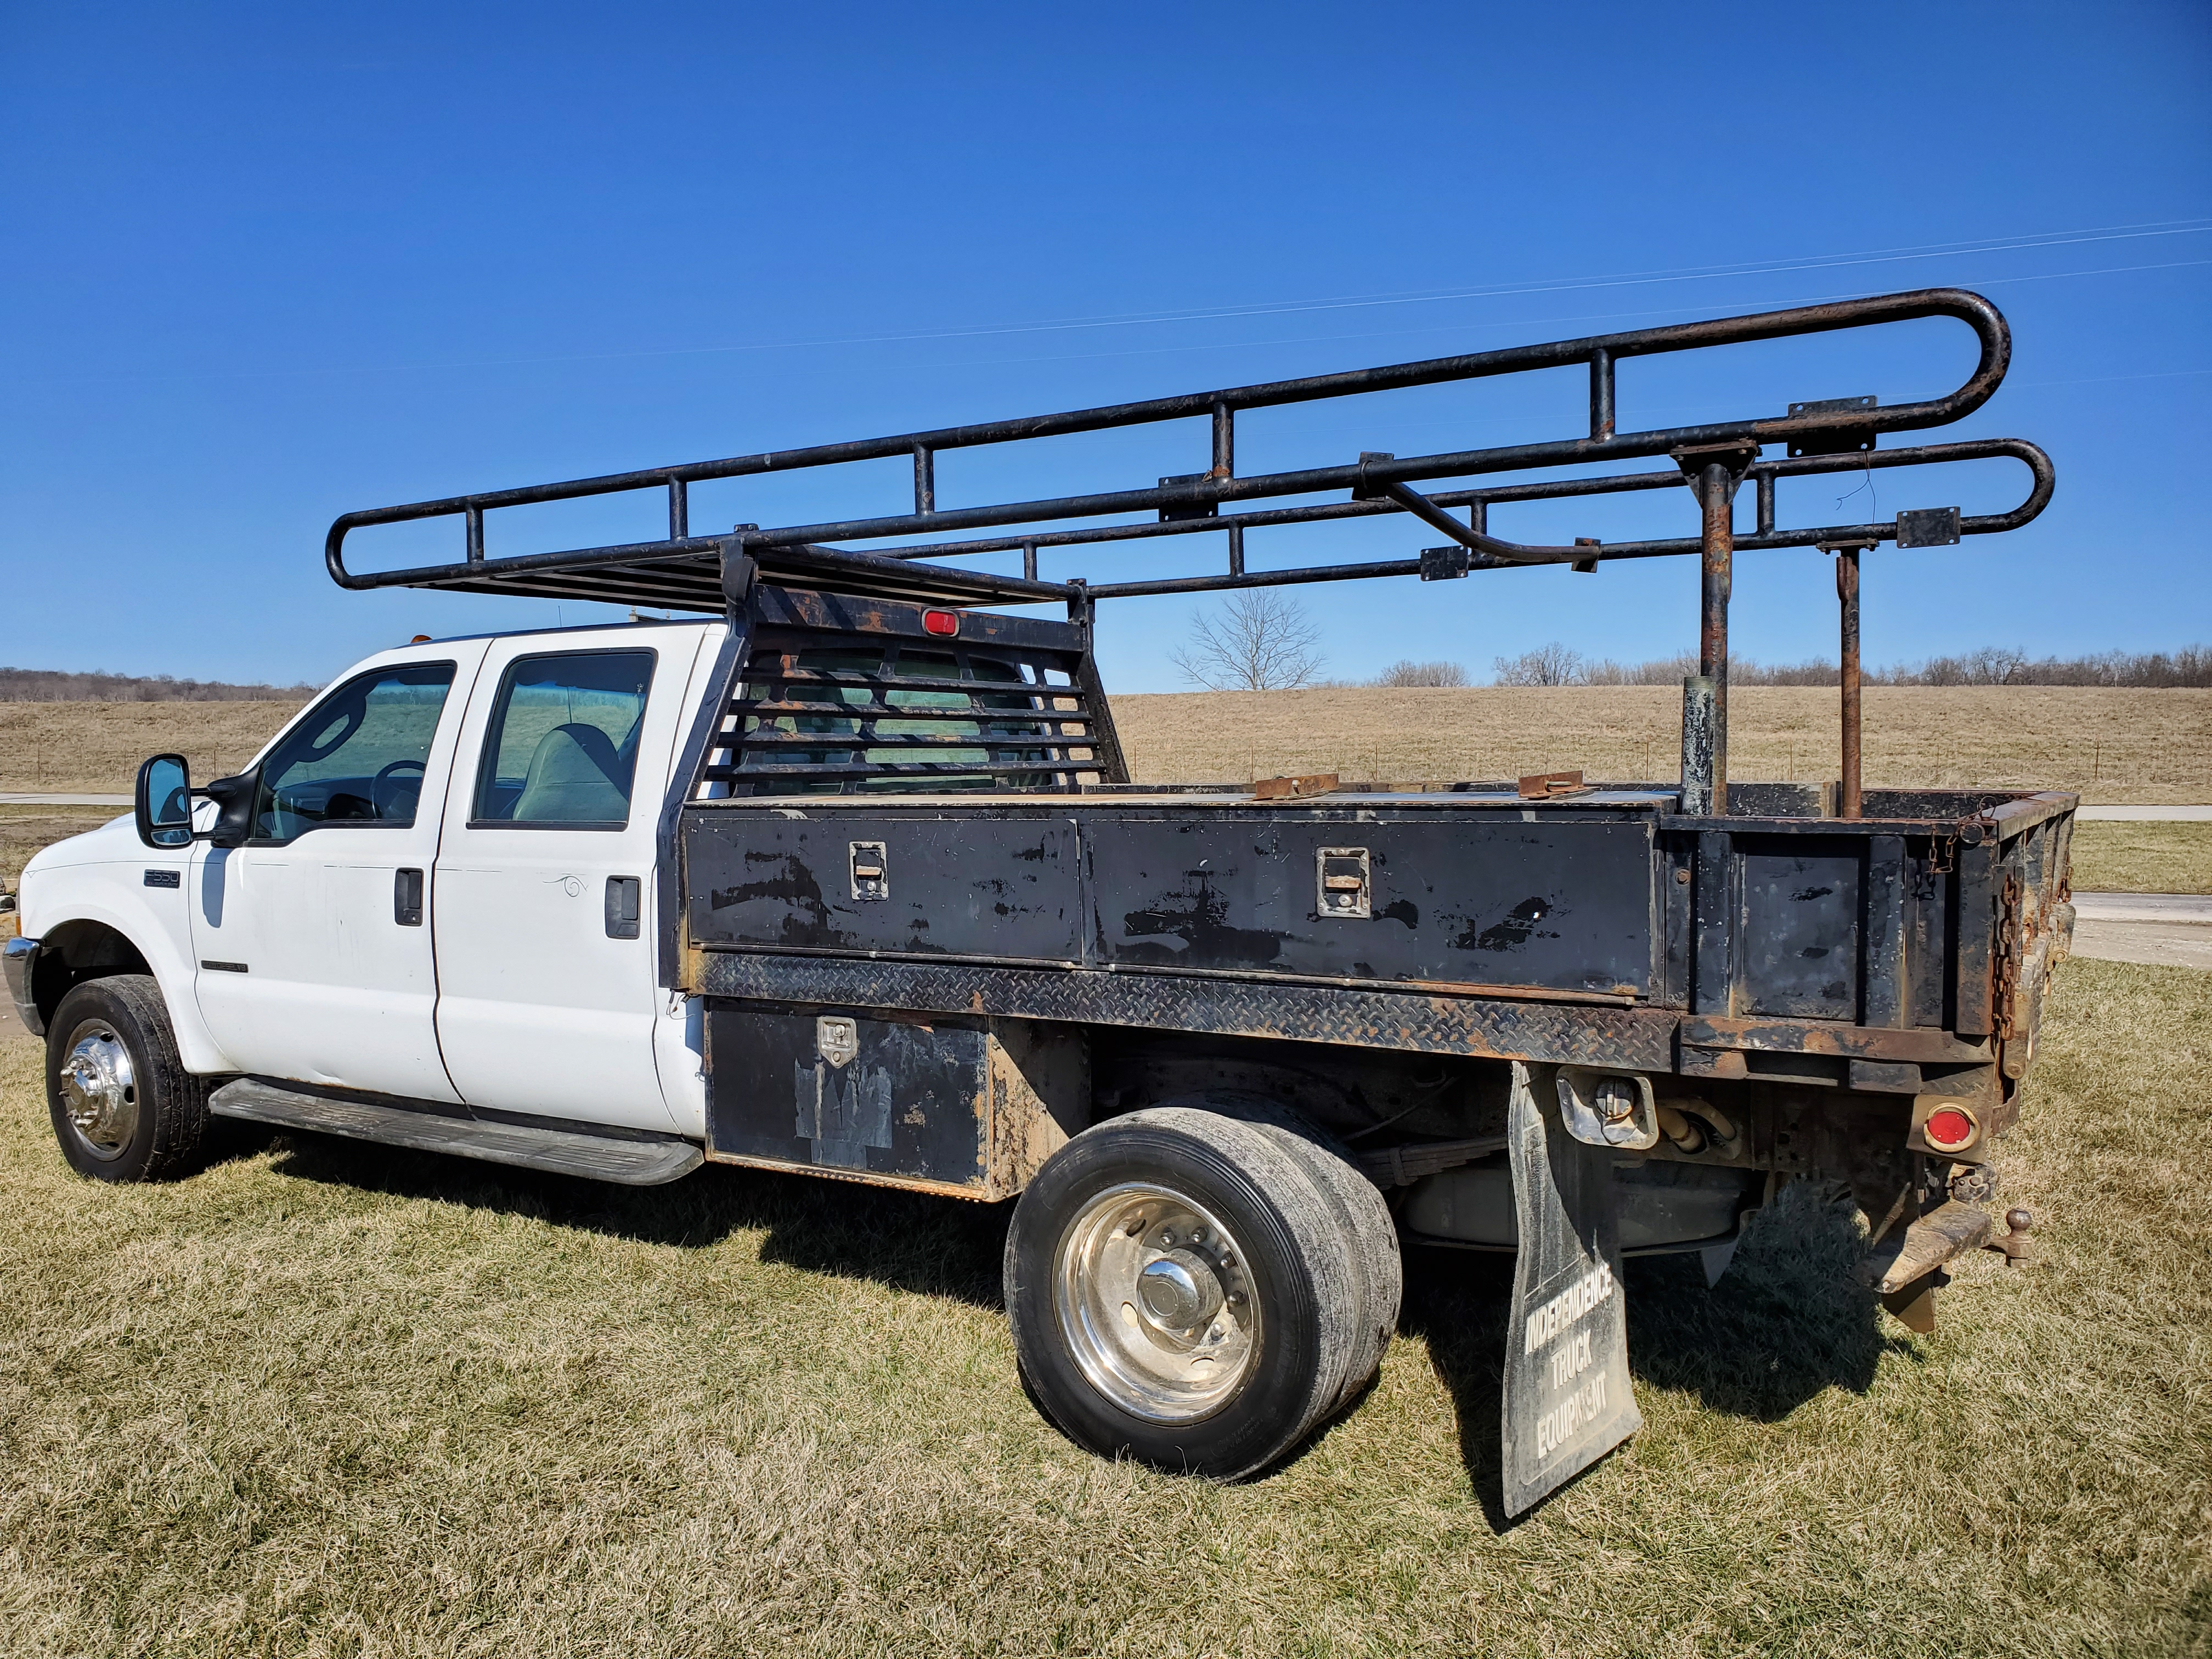 2003 F550 Ford Super Duty Pickup, Automatic, 7.3 Power Stroke Diesel, 8' Foot Omaha Flatbed - Image 9 of 18